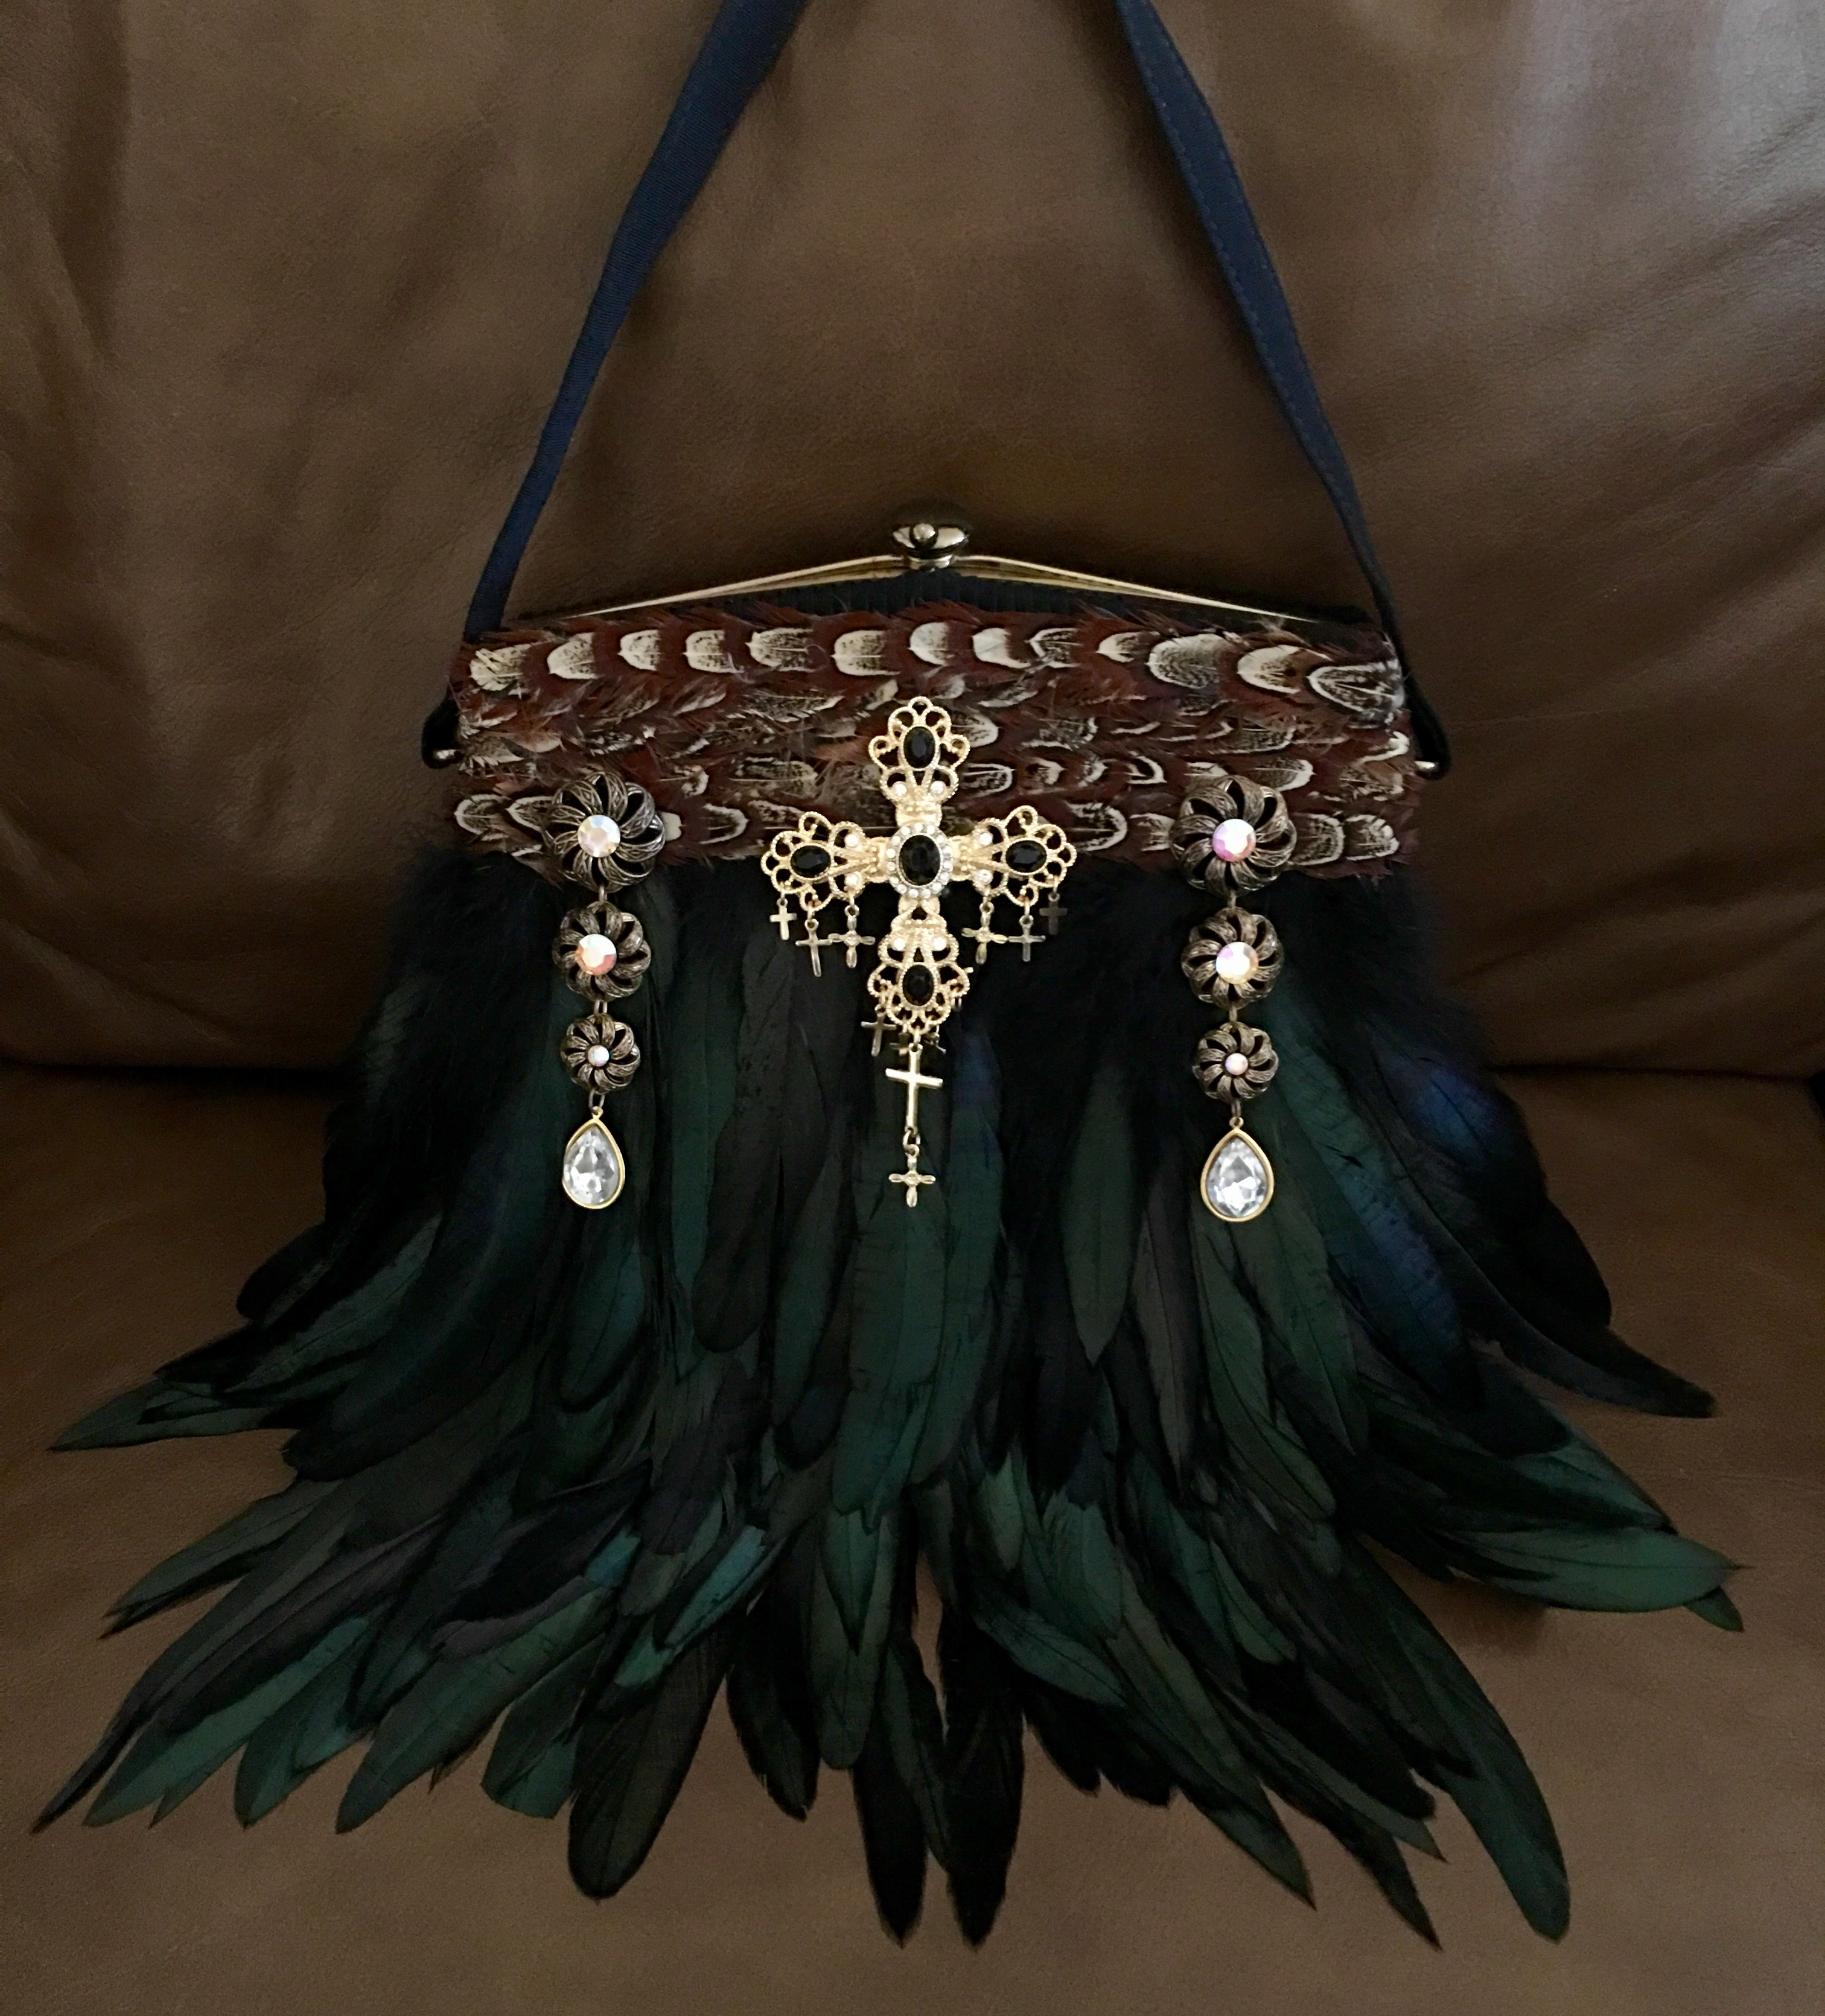 After Binge watching REIGN I just had to create a handbag fit for a Queen!